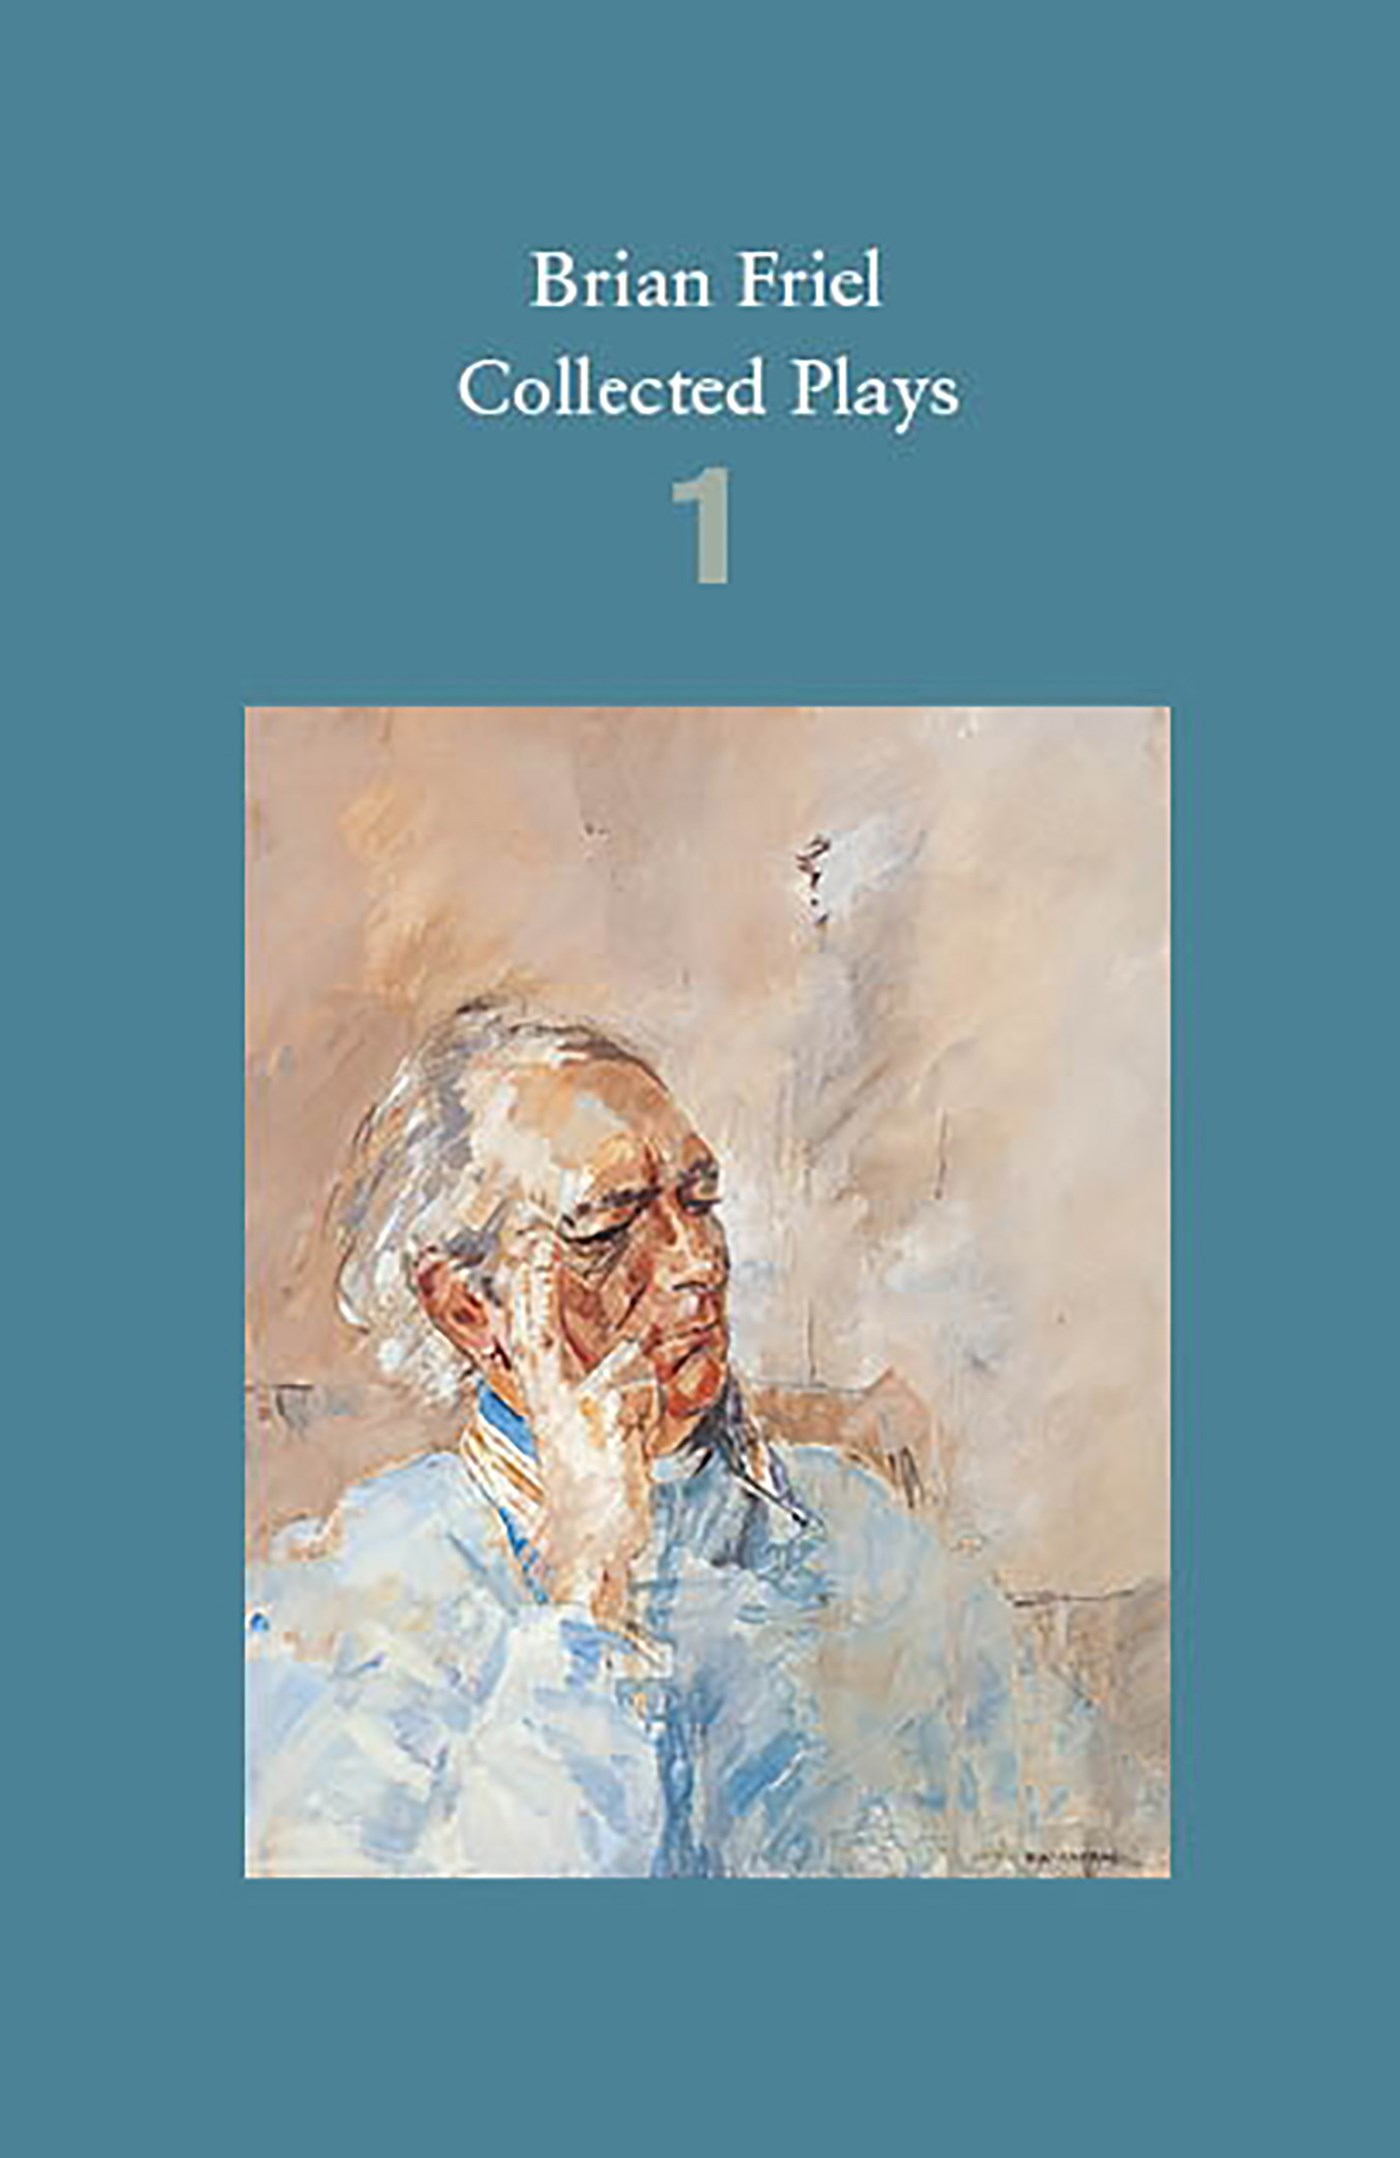 Brian Friel: Collected Plays - Volume 1